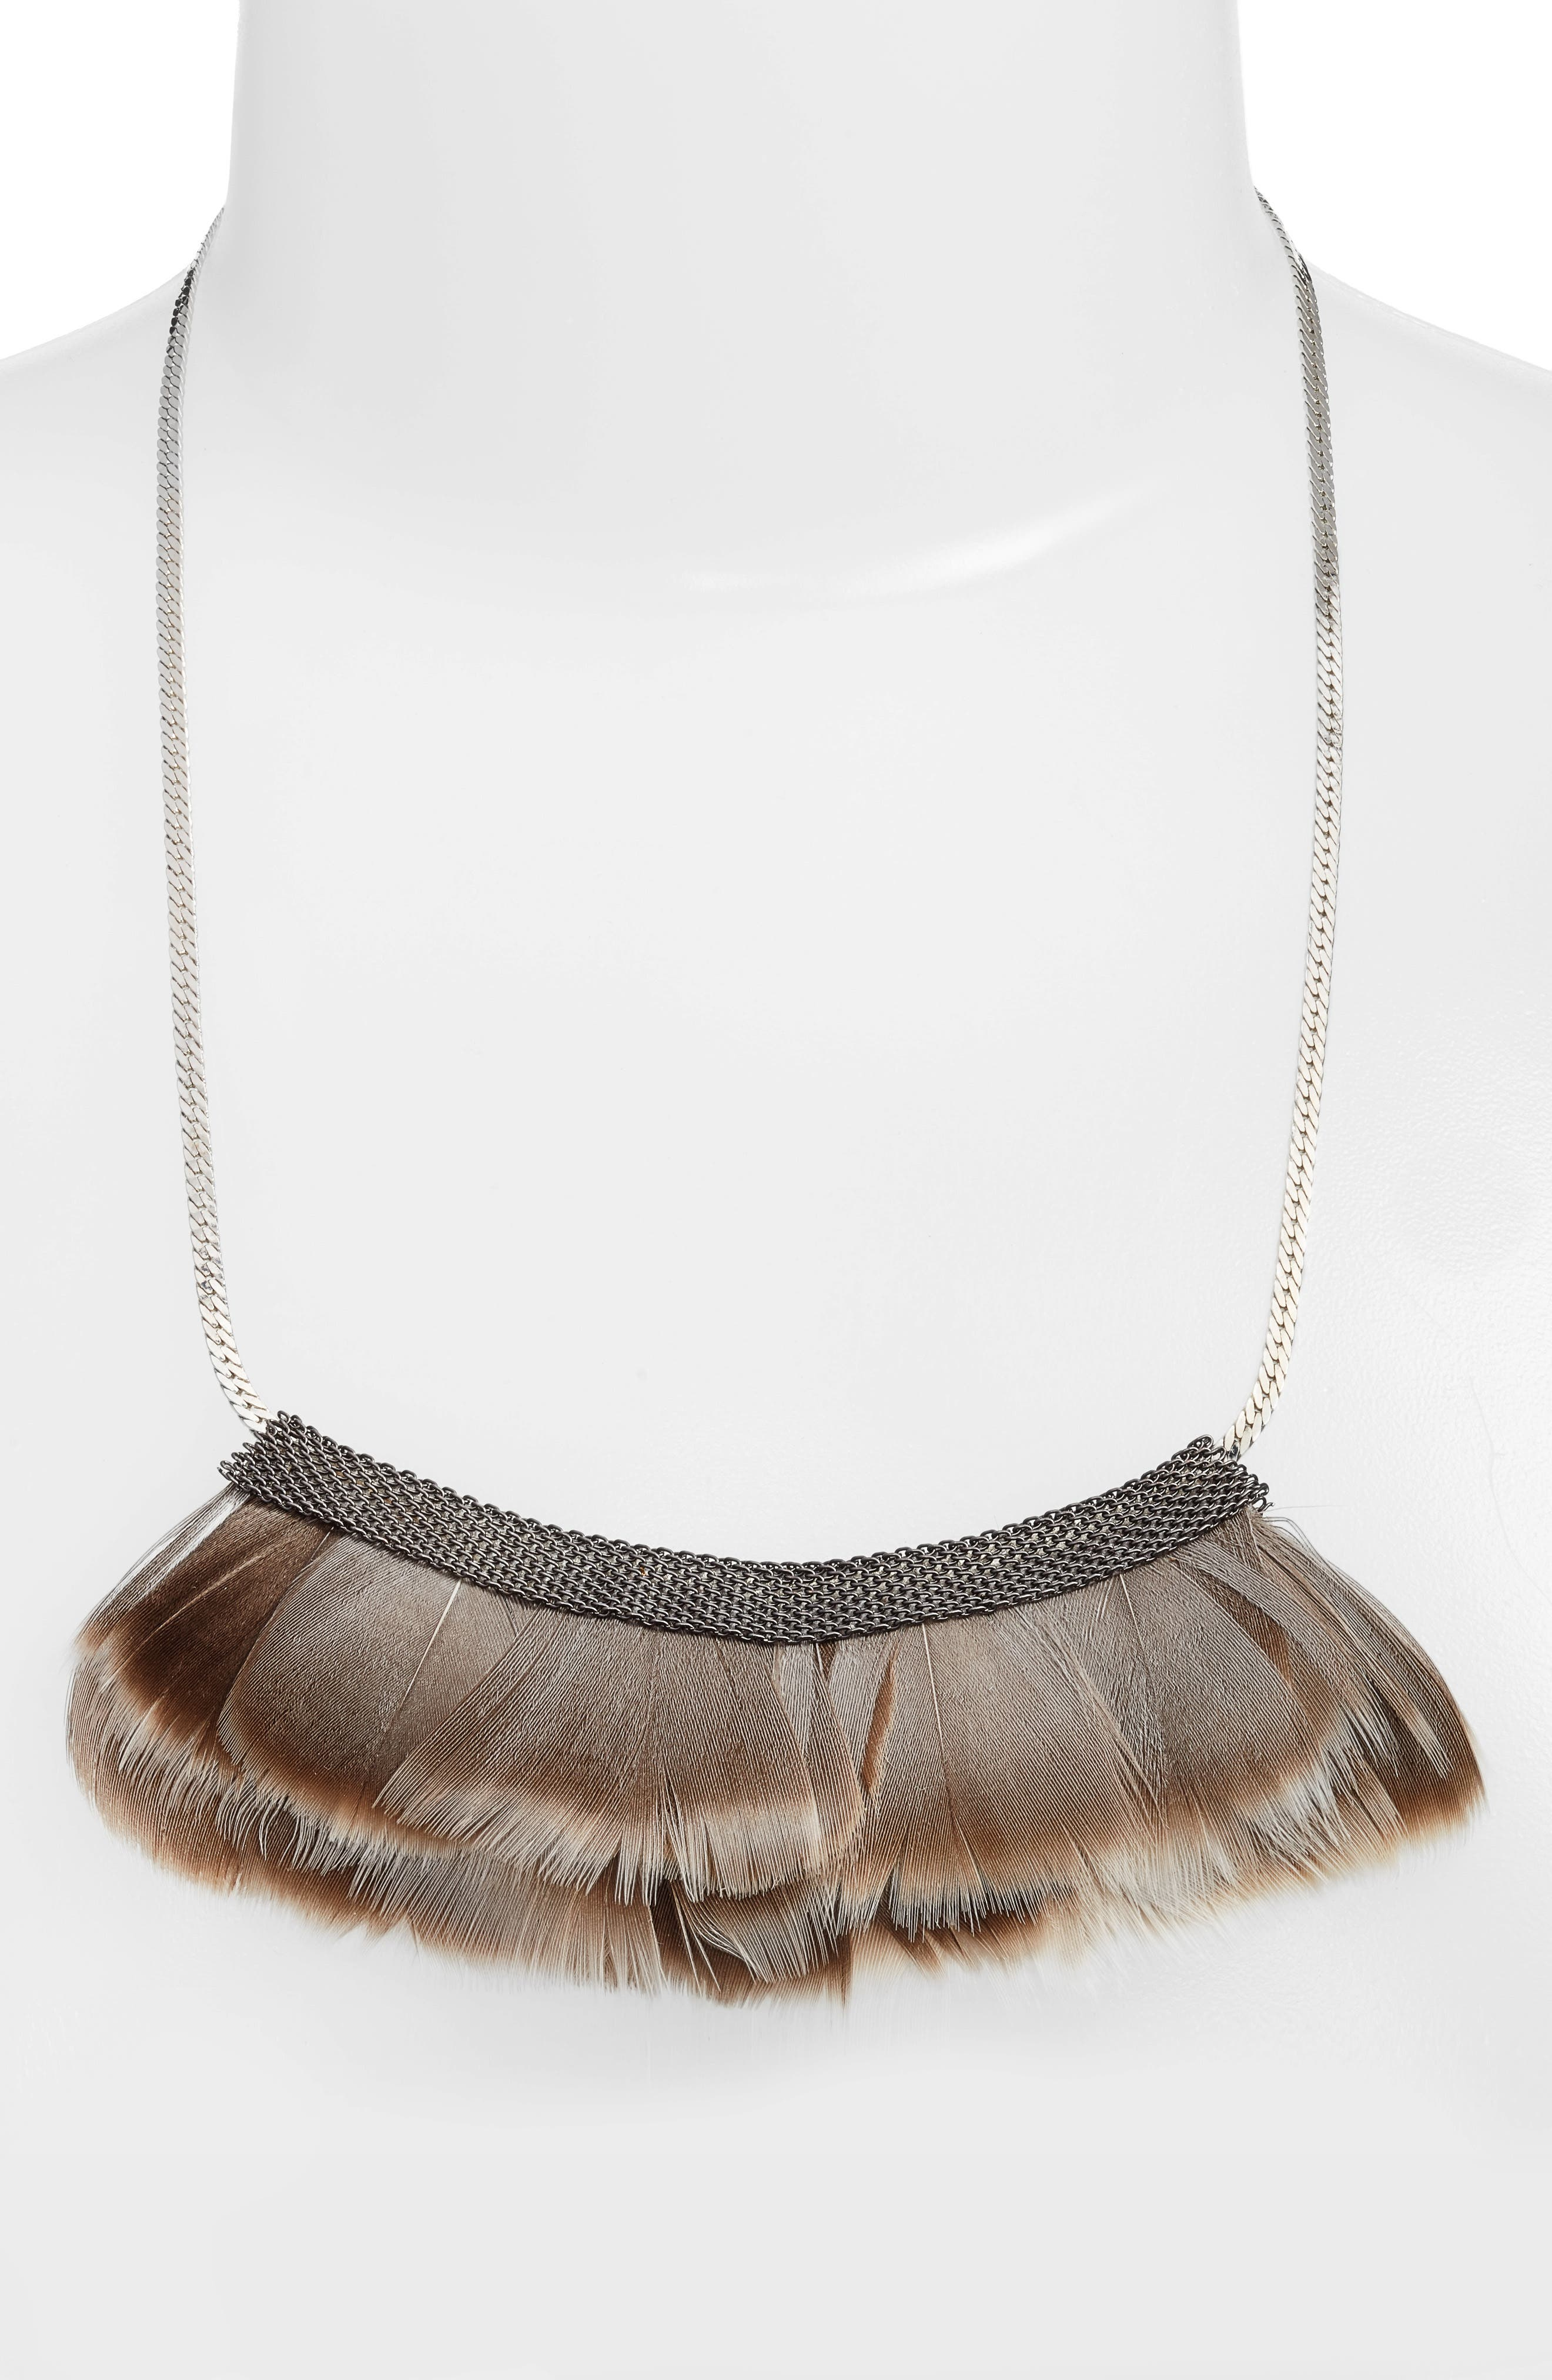 Feather Bib Necklace,                             Alternate thumbnail 2, color,                             040